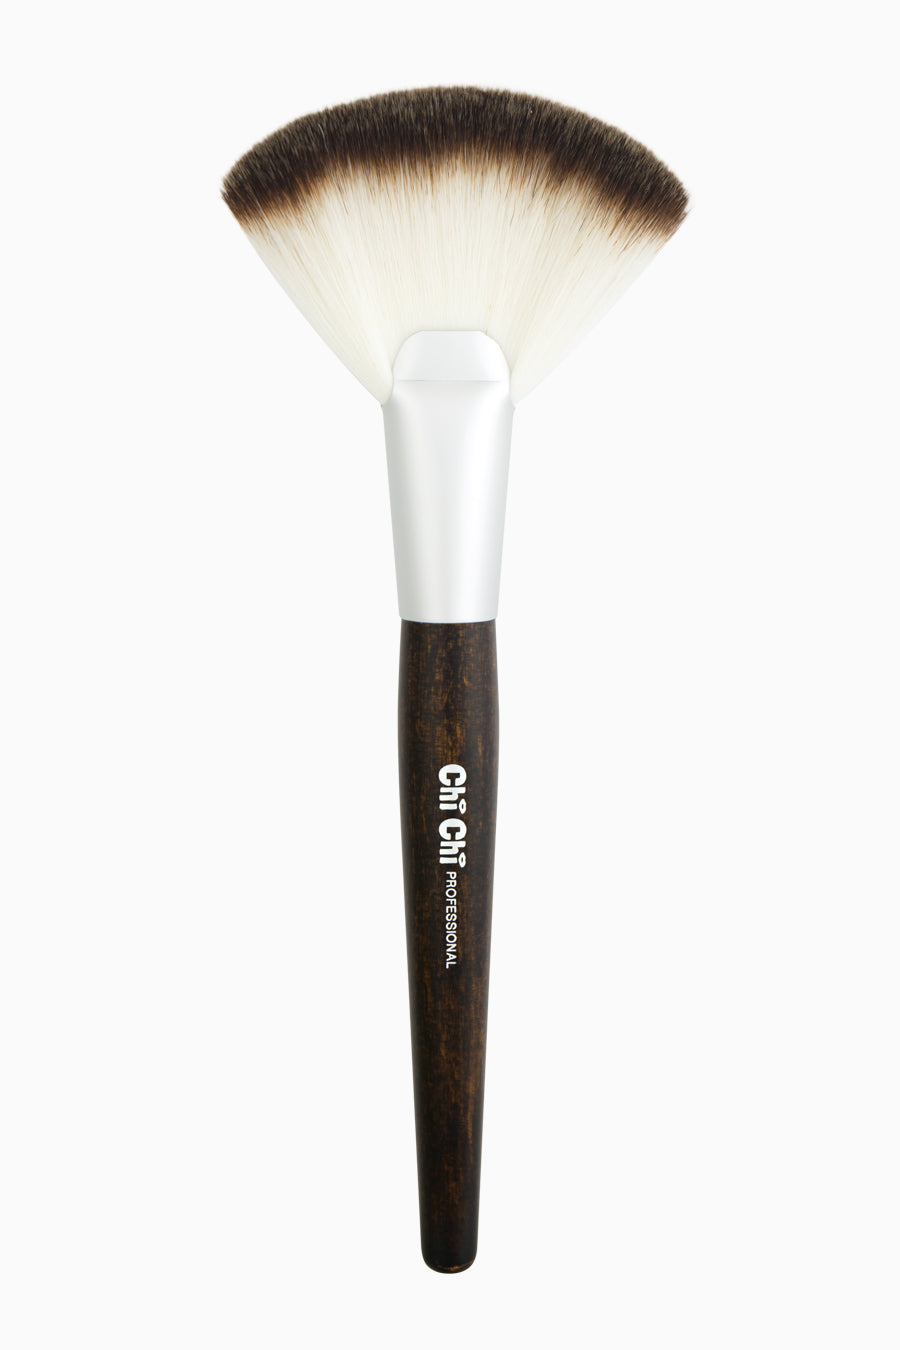 Powder / Fan Brush - 109